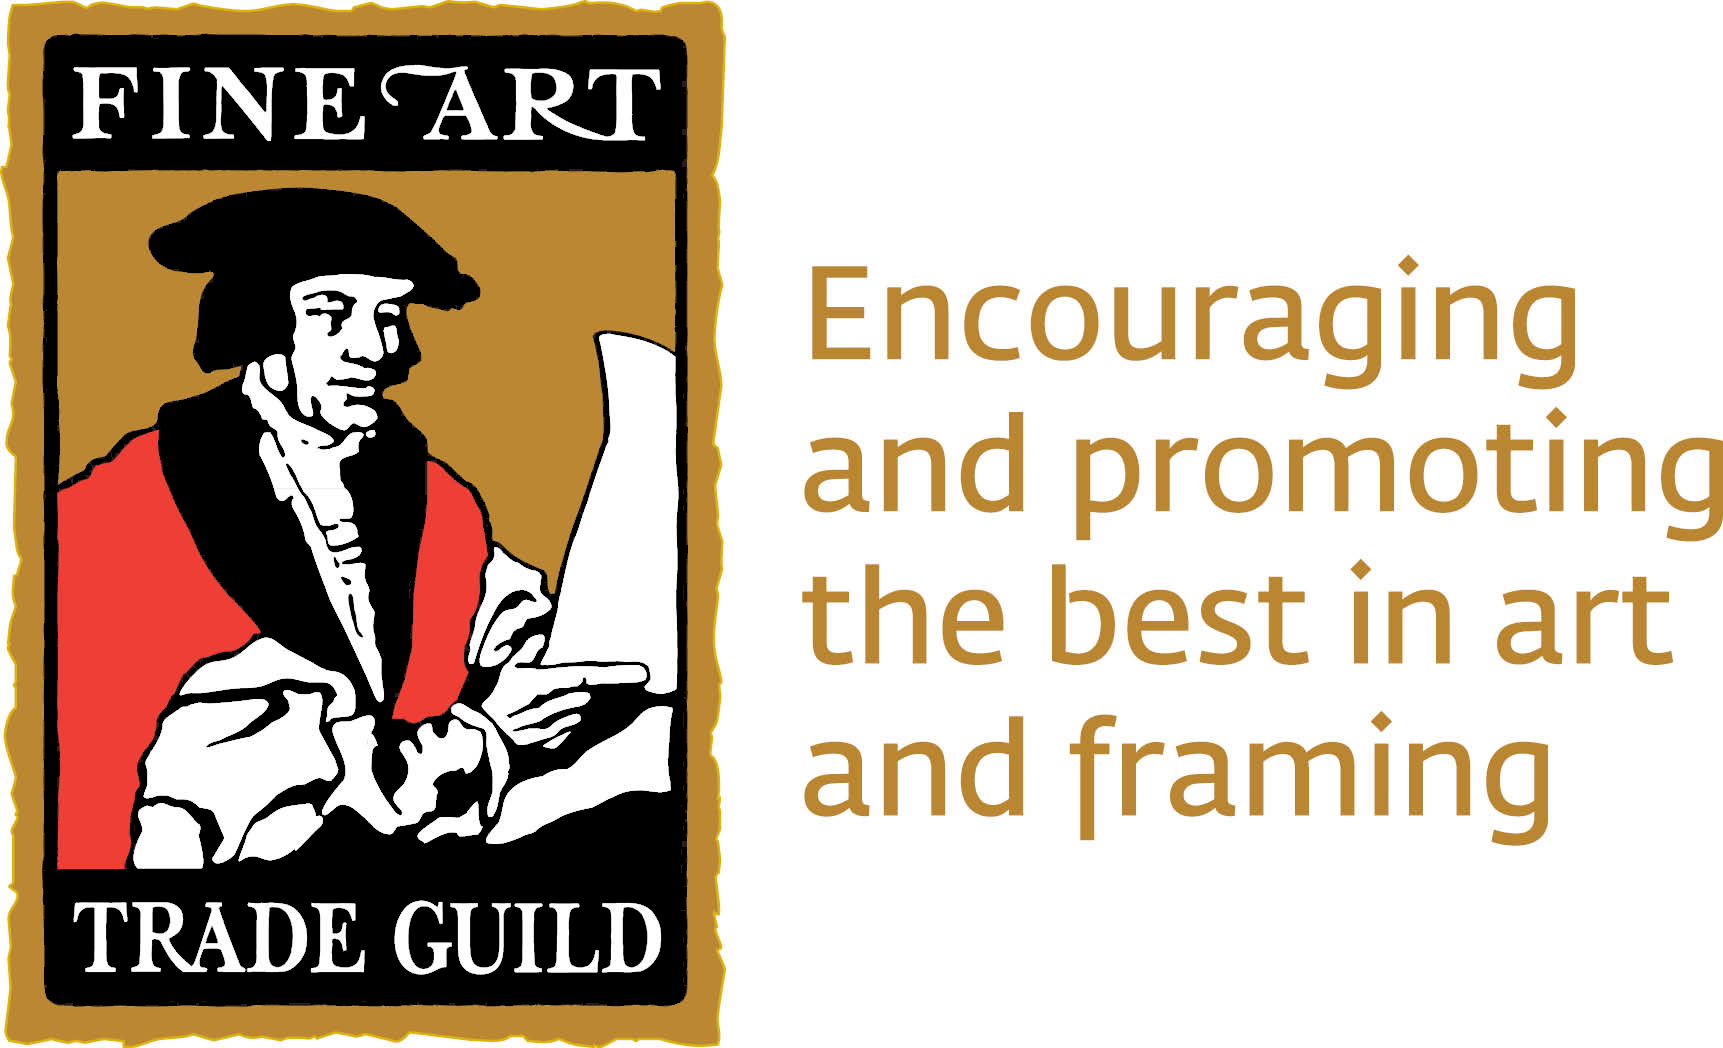 Fine Art Trade Guild logo